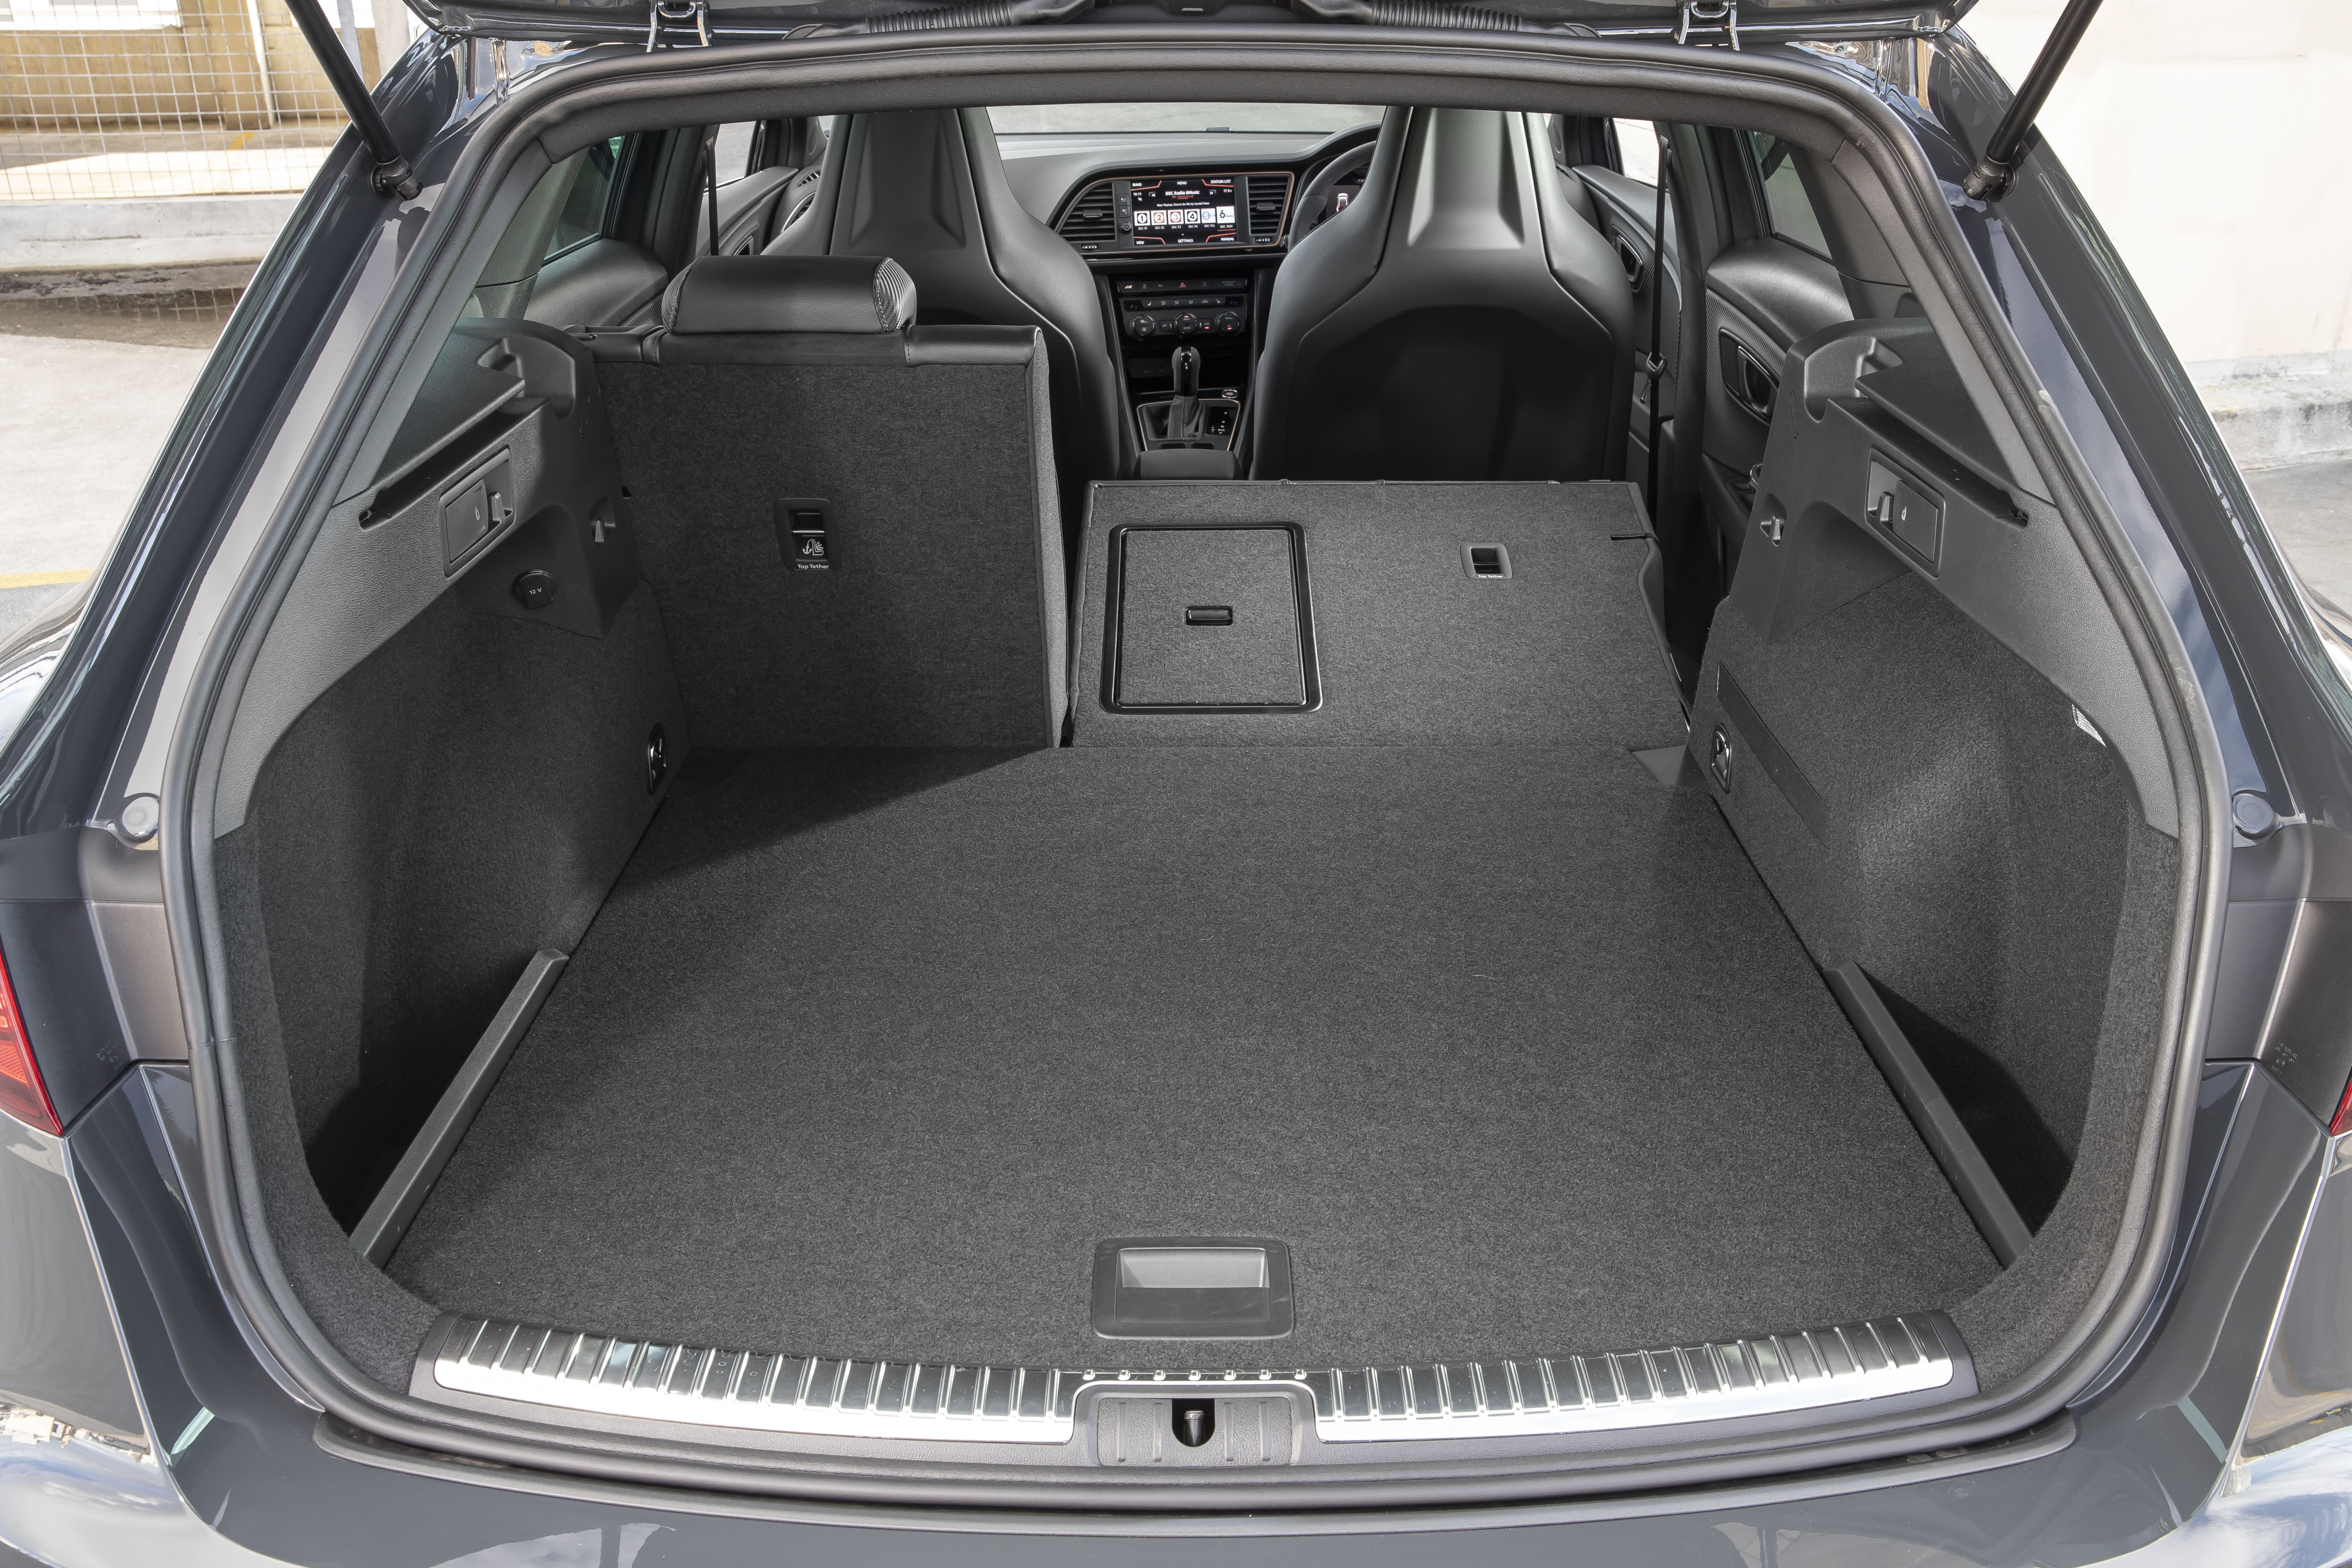 Lowering the rear seats increases boot space impressively